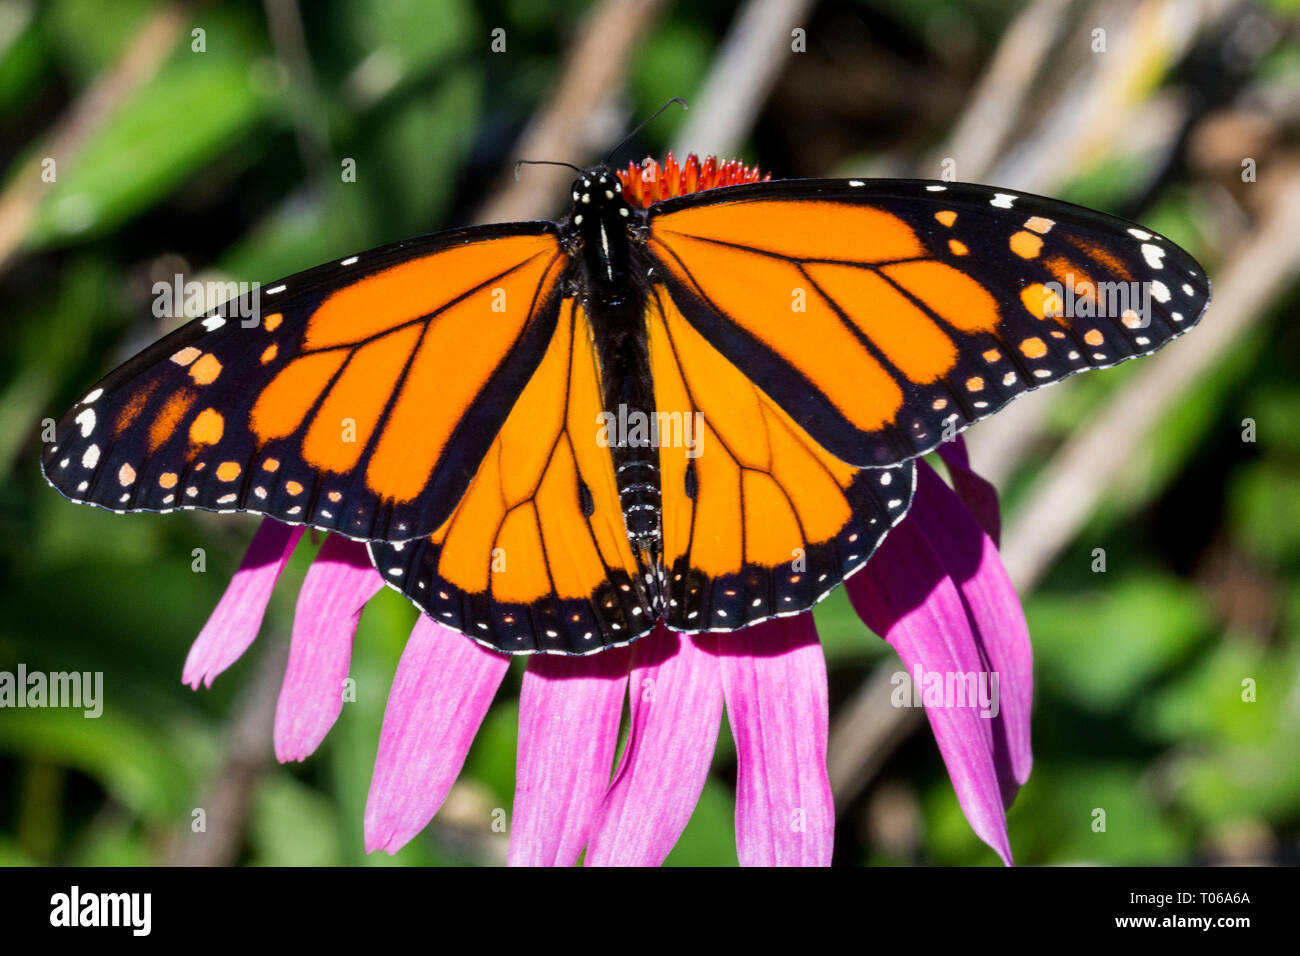 Male Monarch Butterfly Nectaring on Purple Cone flower - Stock Image